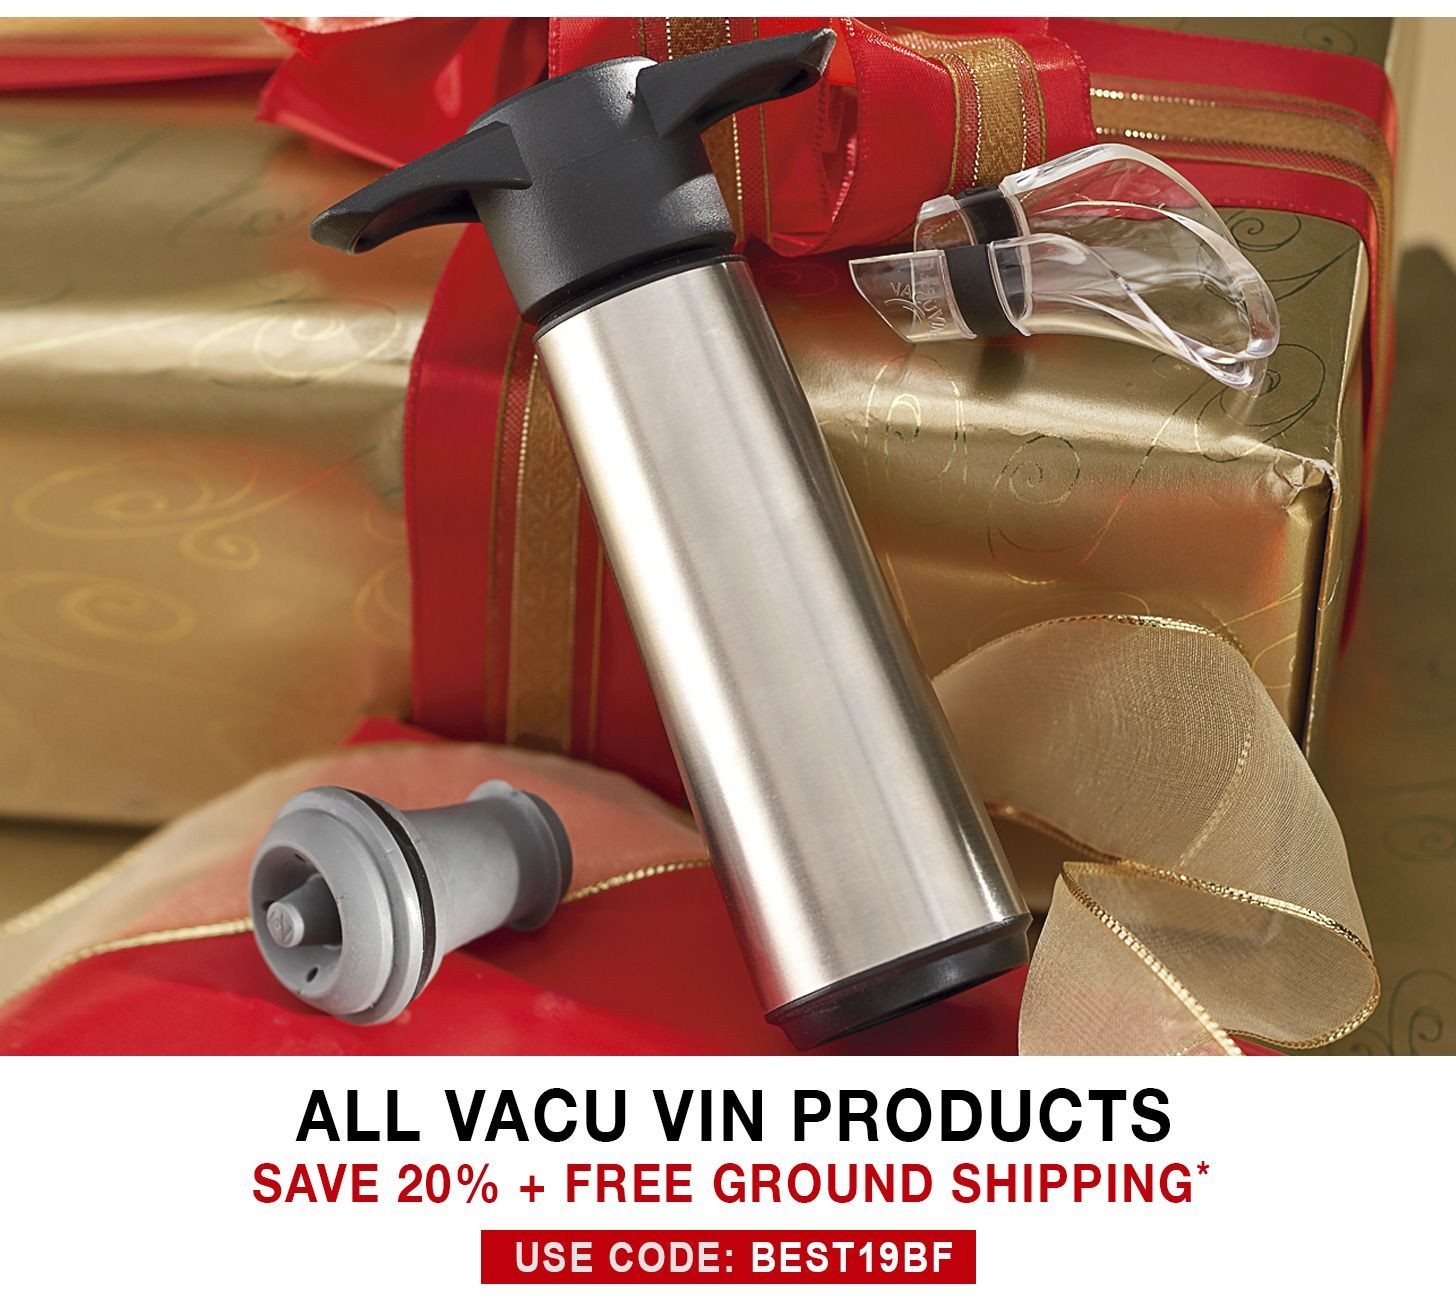 Vacu Vin Wine Saver - 20% Off + Free Ground Shipping - Use Code BEST19BF